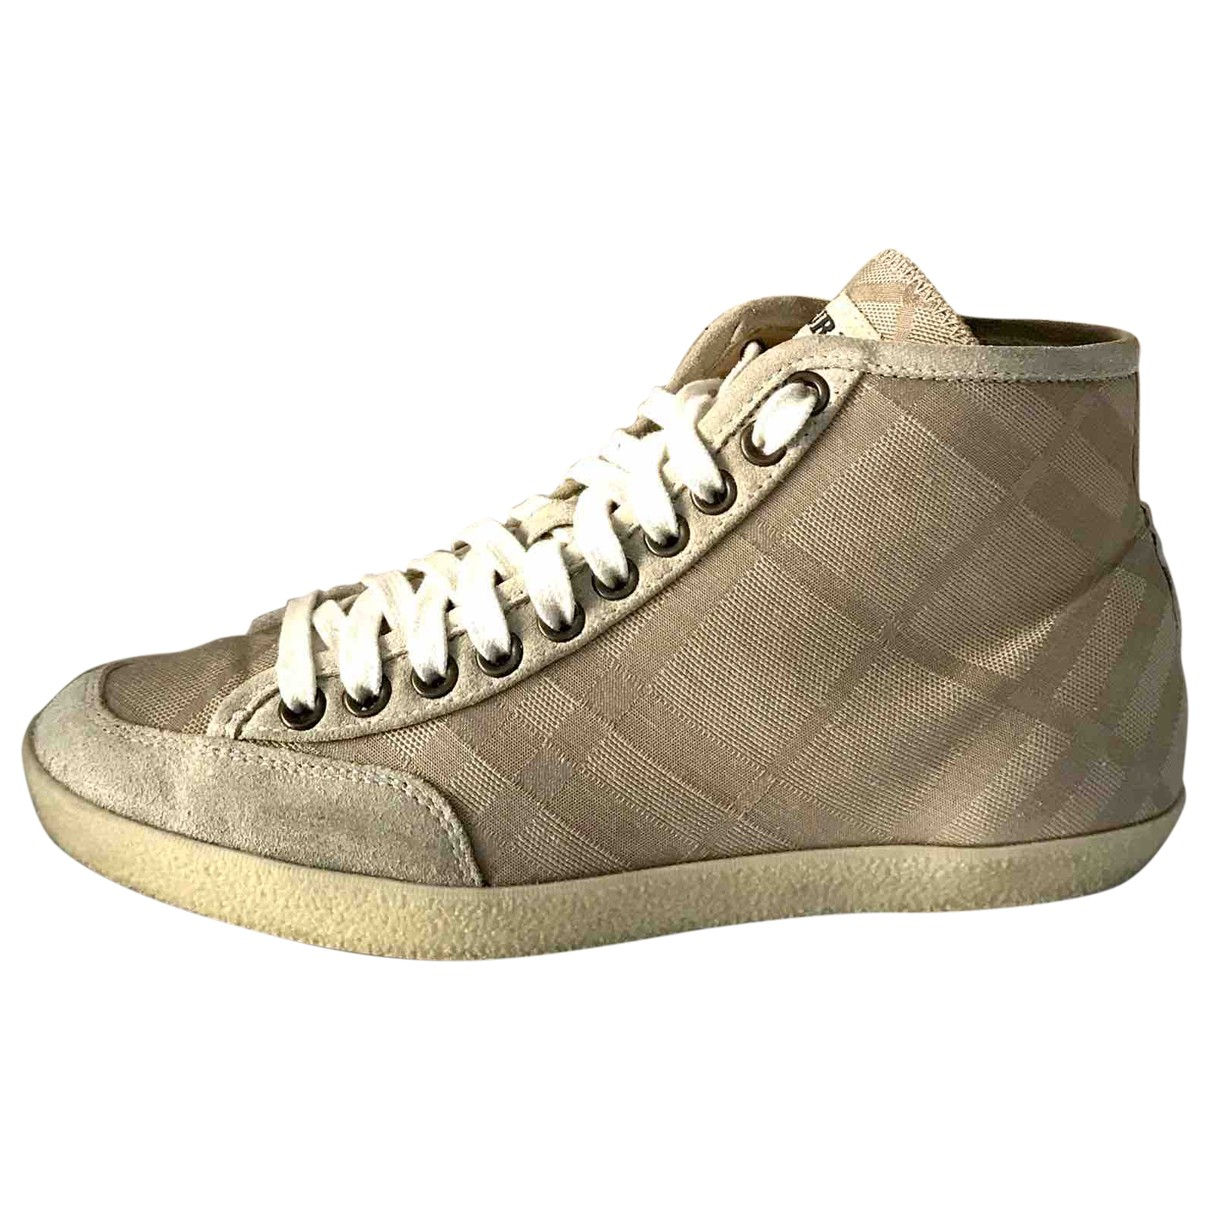 Burberry \N Beige Cloth Trainers for Women 36 EU